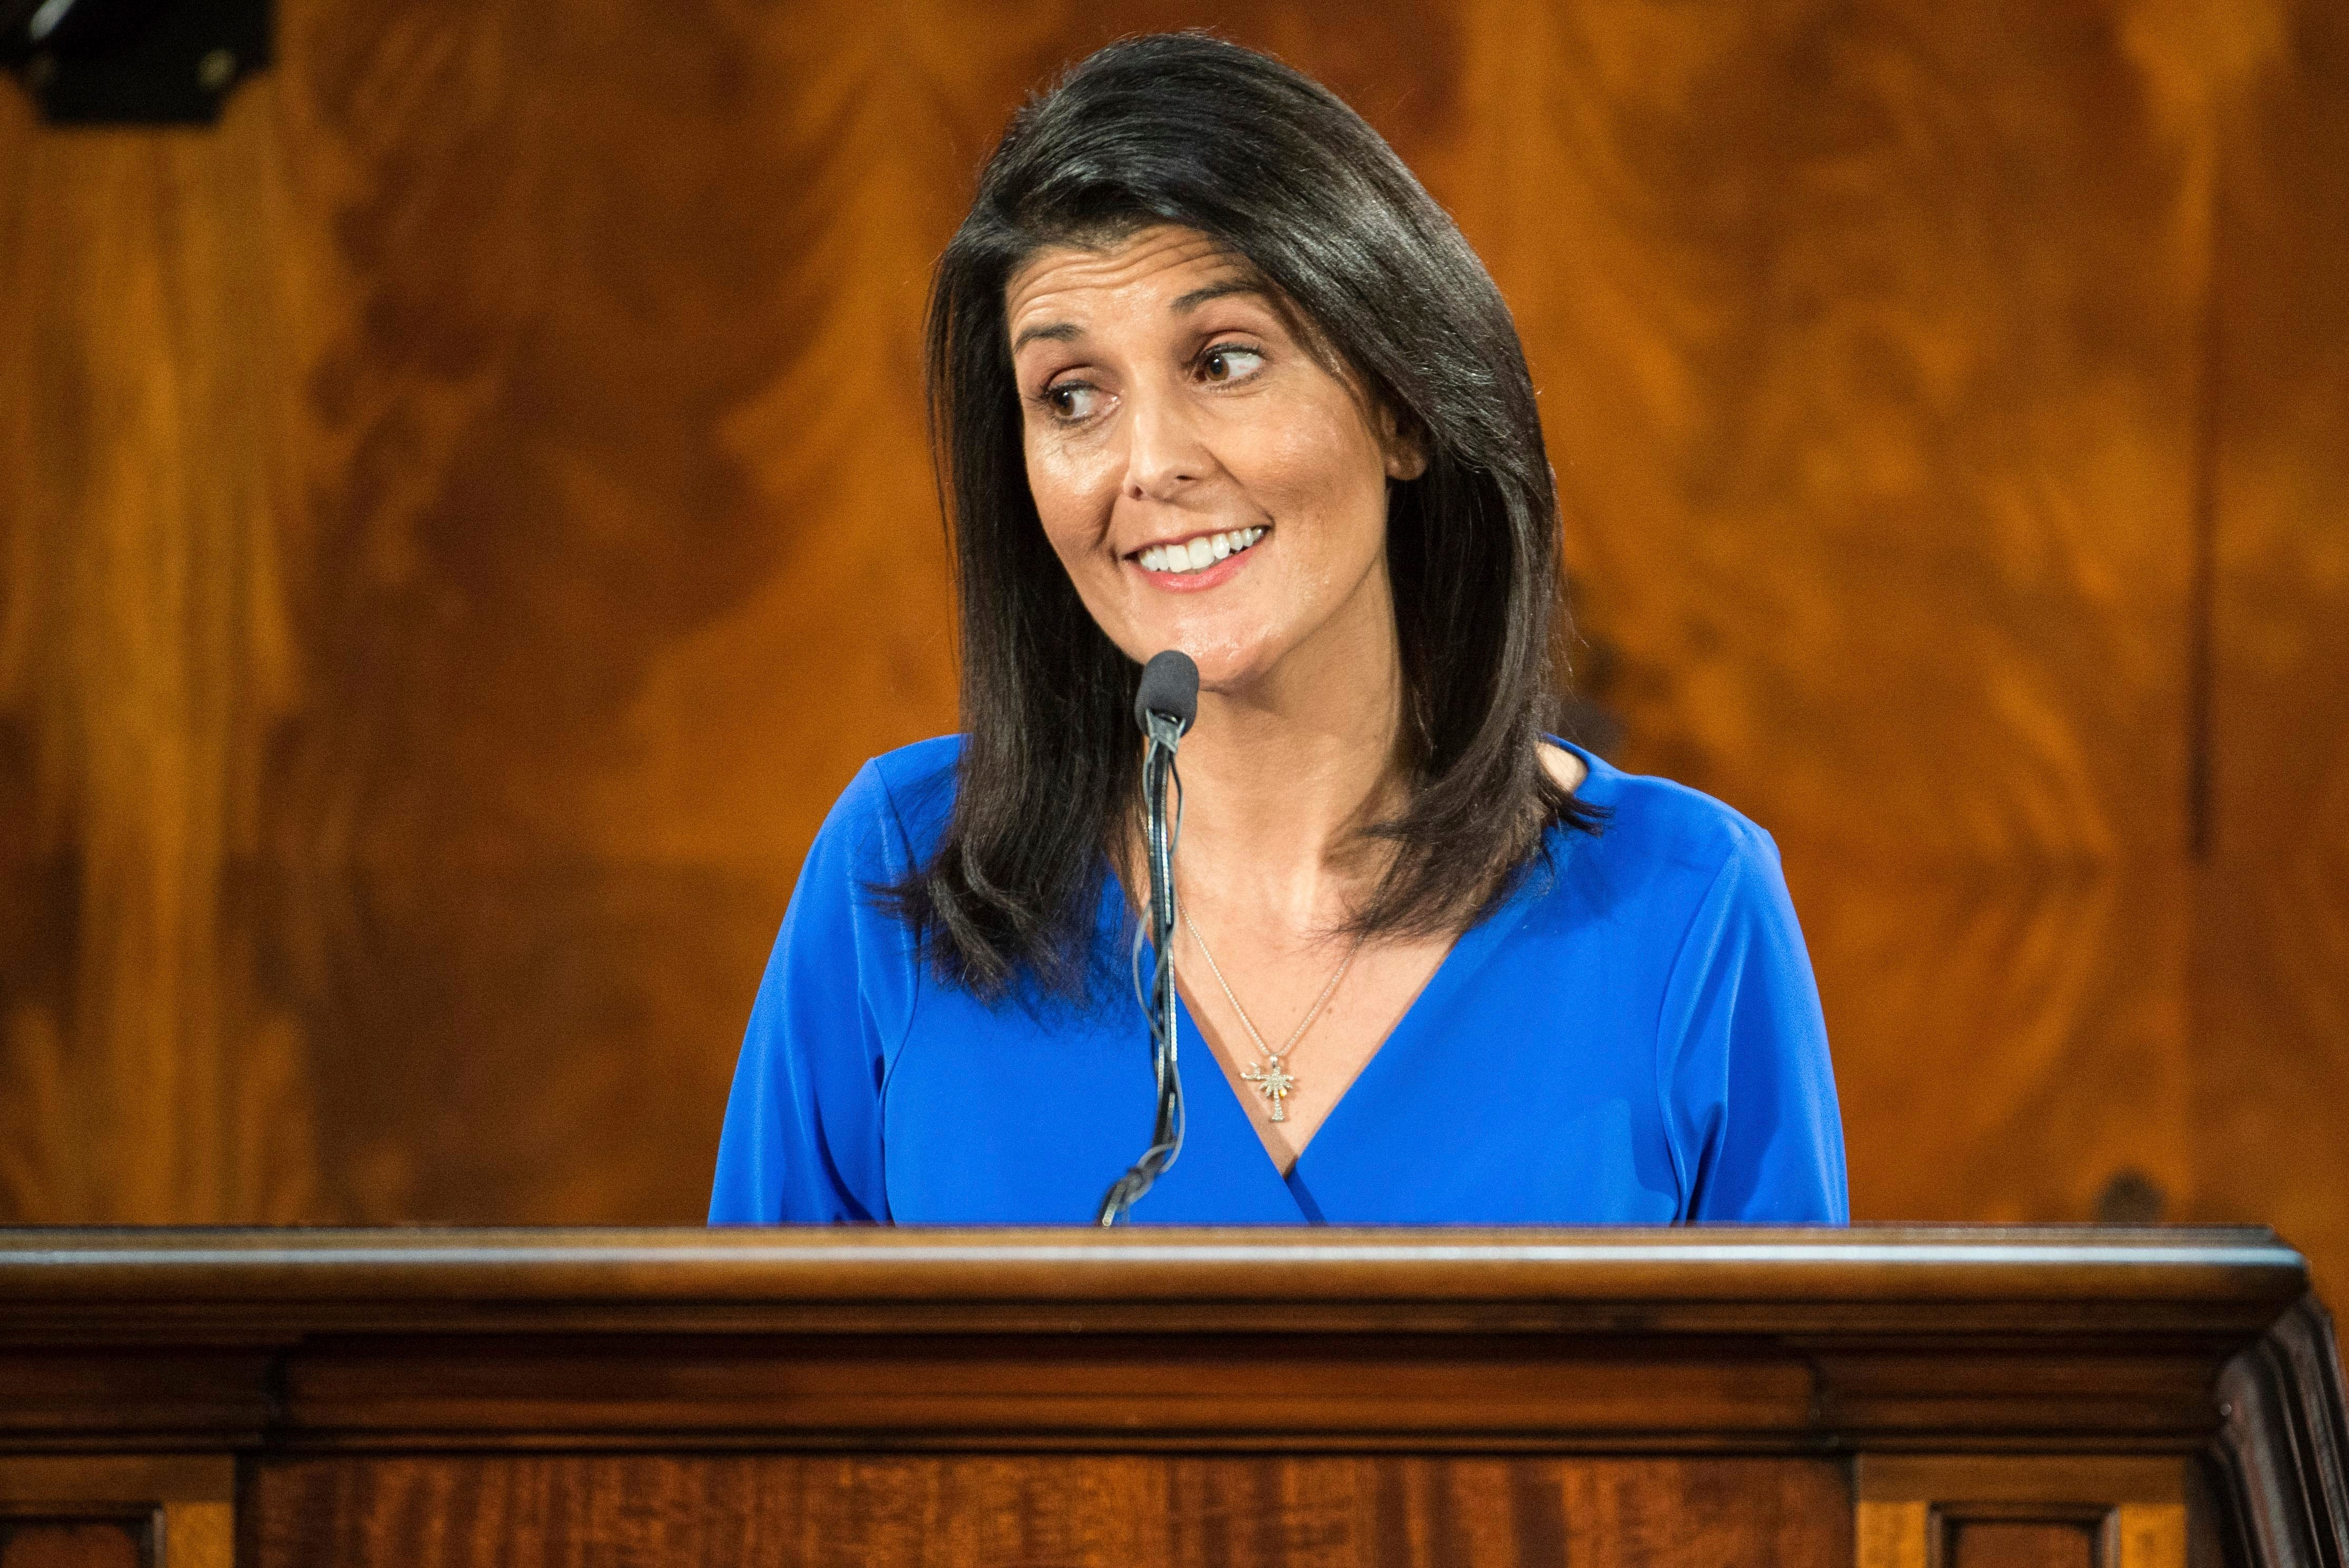 Nikki Haley could face questions about human rights abuses at Senate hearing